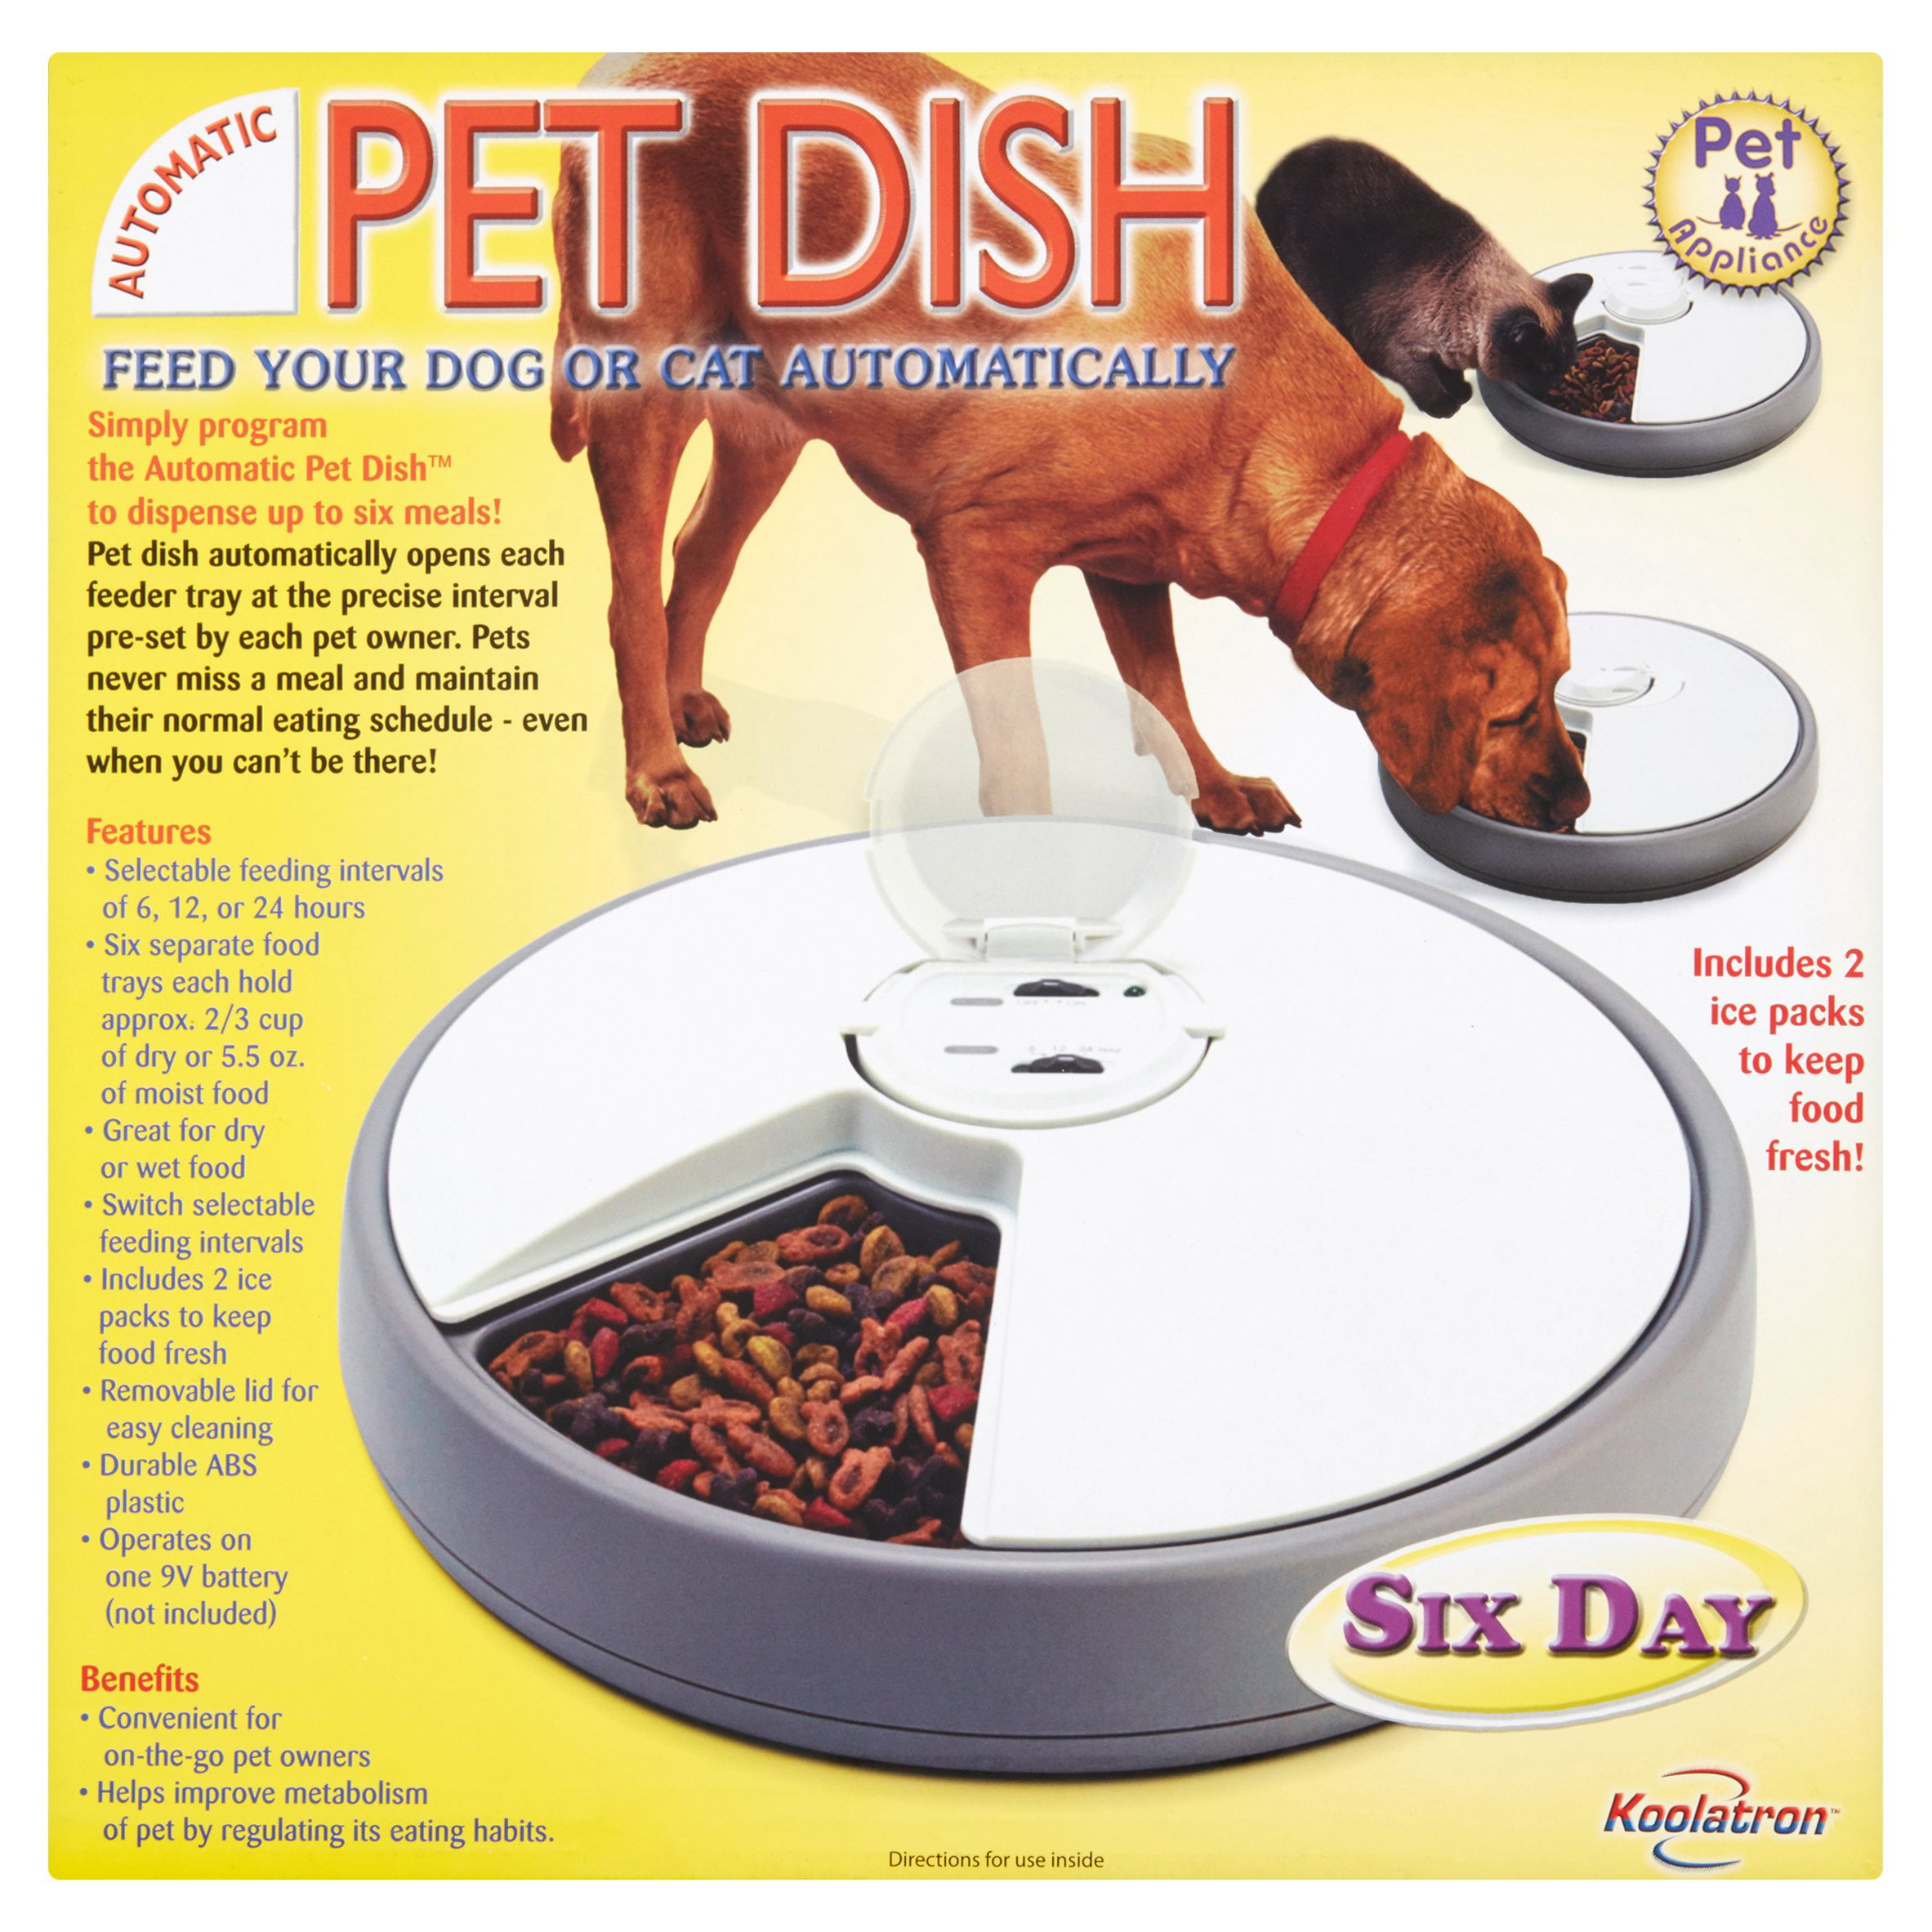 Koolatron Six Day Automatic Pet Dish   Walmart.com